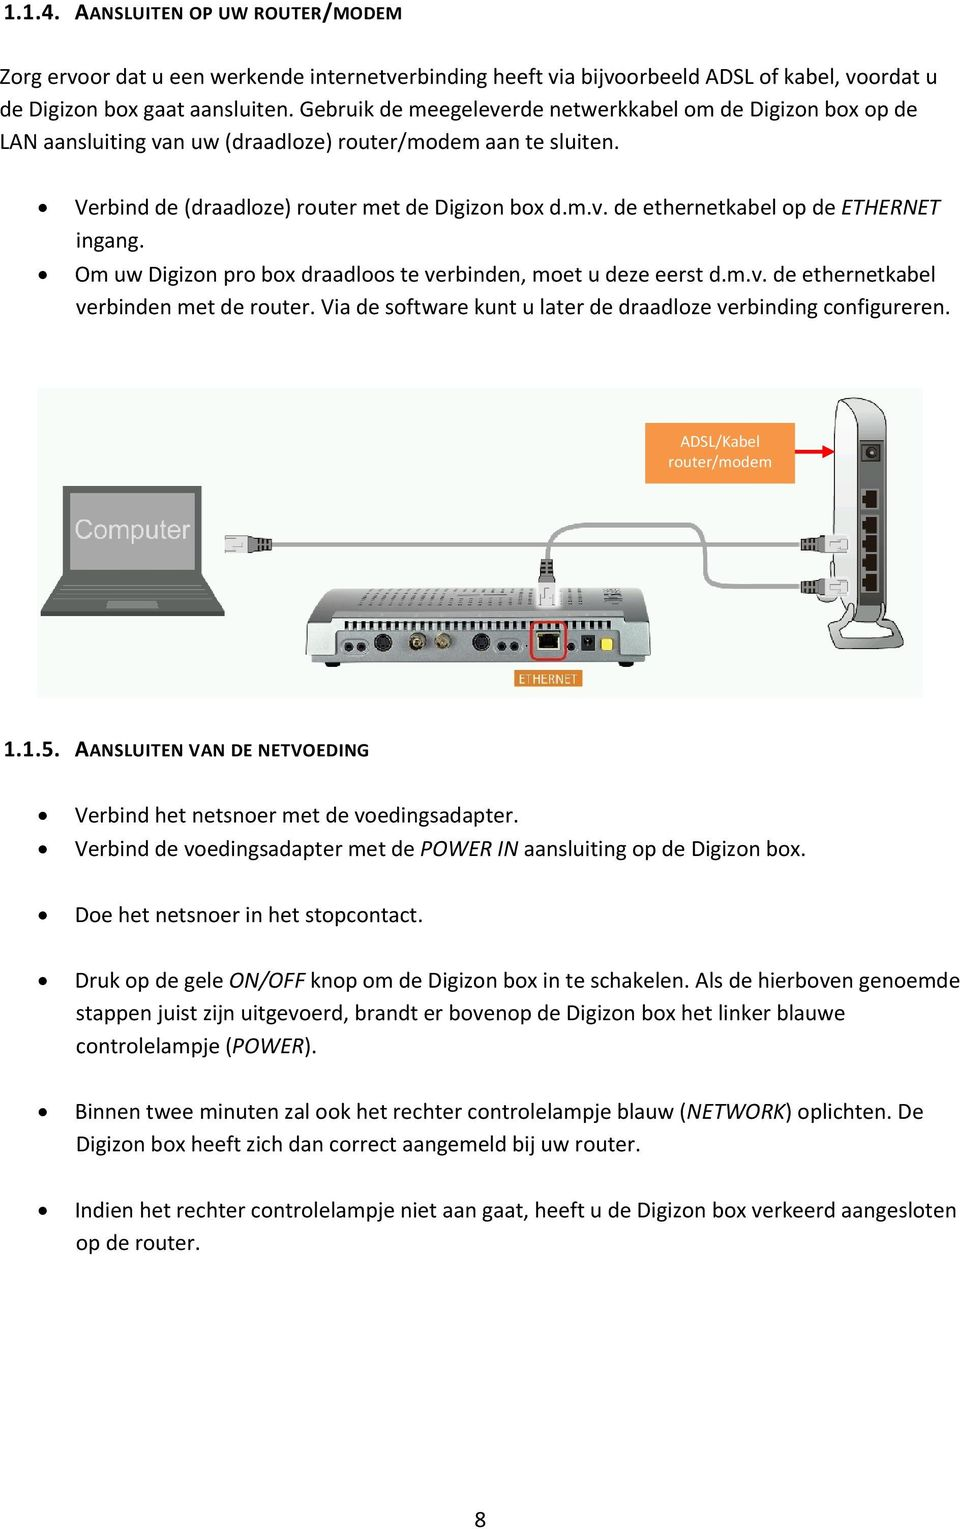 Om uw Digizon pro box draadloos te verbinden, moet u deze eerst d.m.v. de ethernetkabel verbinden met de router. Via de software kunt u later de draadloze verbinding configureren.